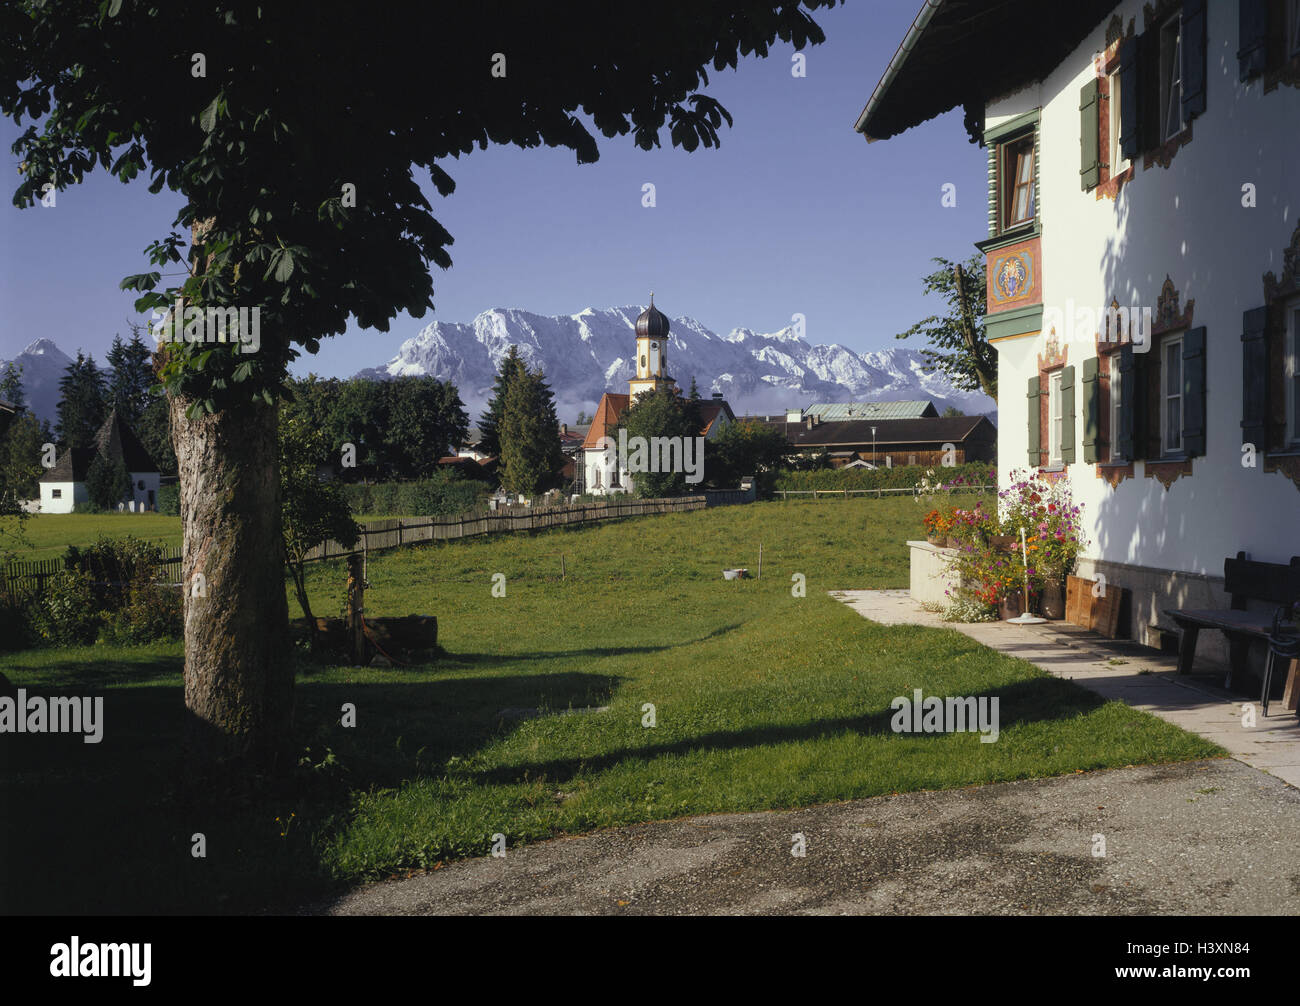 Germany, Obb. Werdenfels, embankment region, local view with church, Wetterstein Range, mountains, meadows, church, - Stock Image